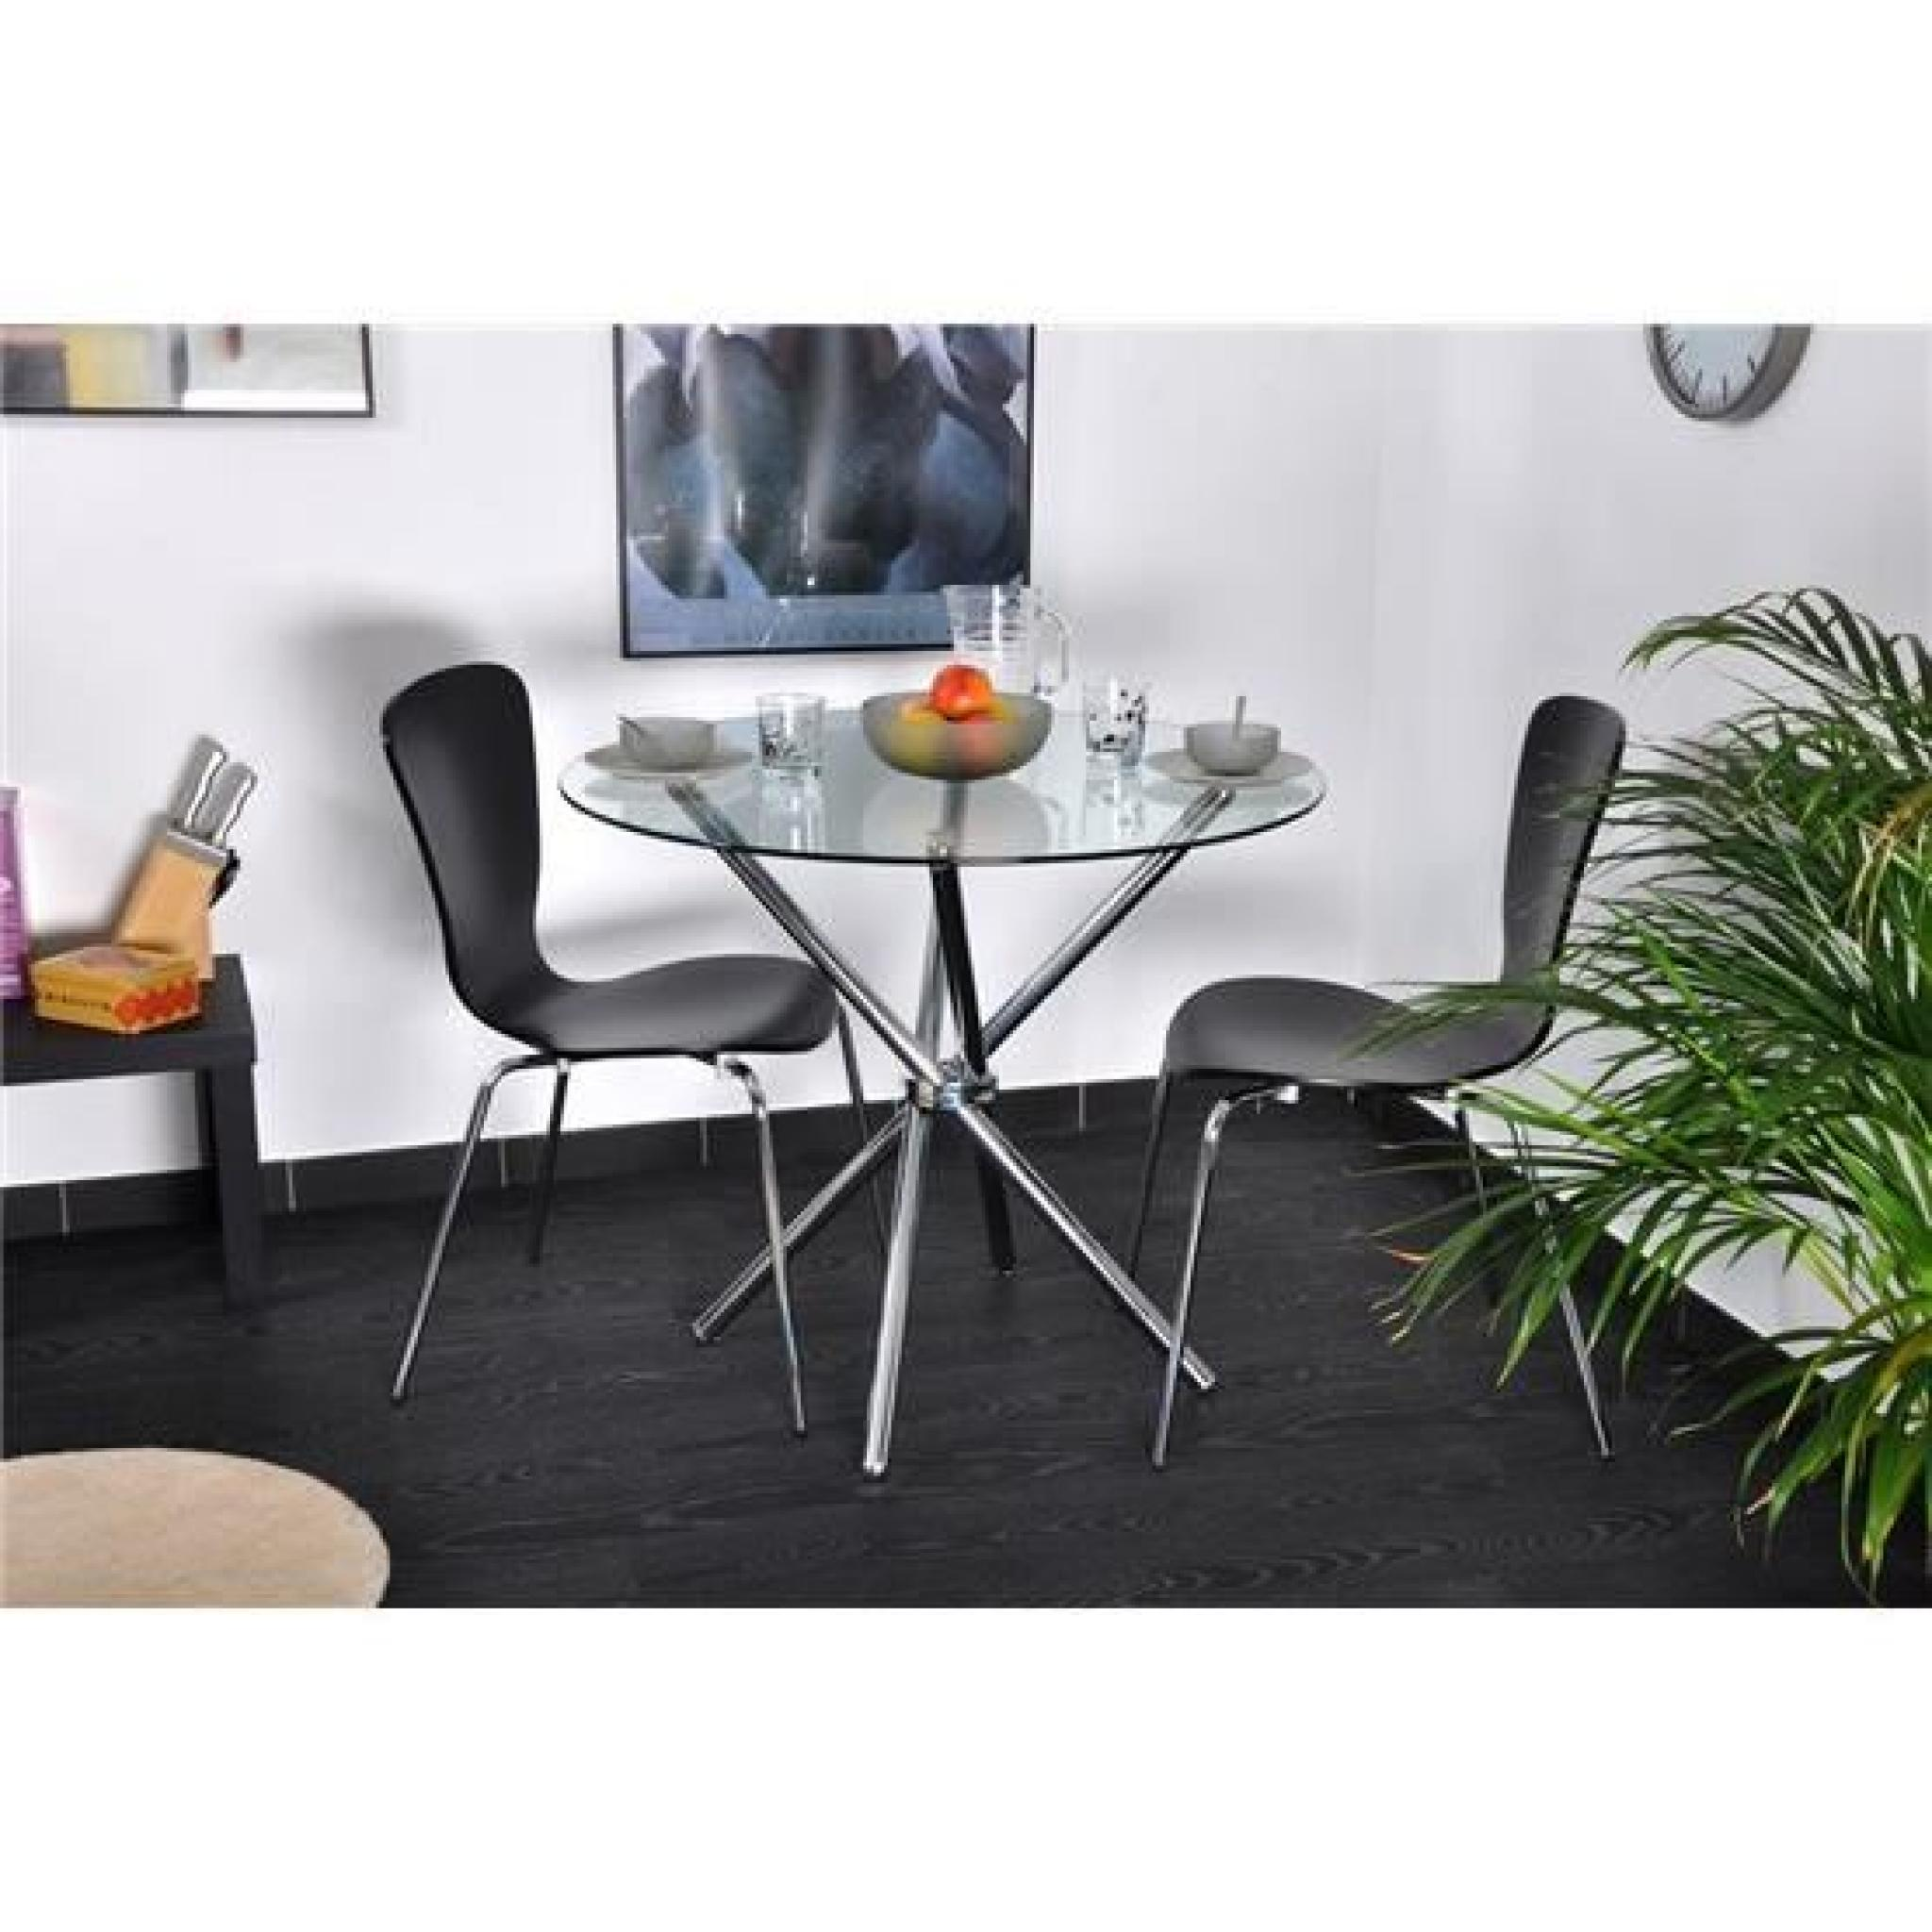 Table ronde norga chrome et transparent achat vente for Table ronde salle a manger pas cher